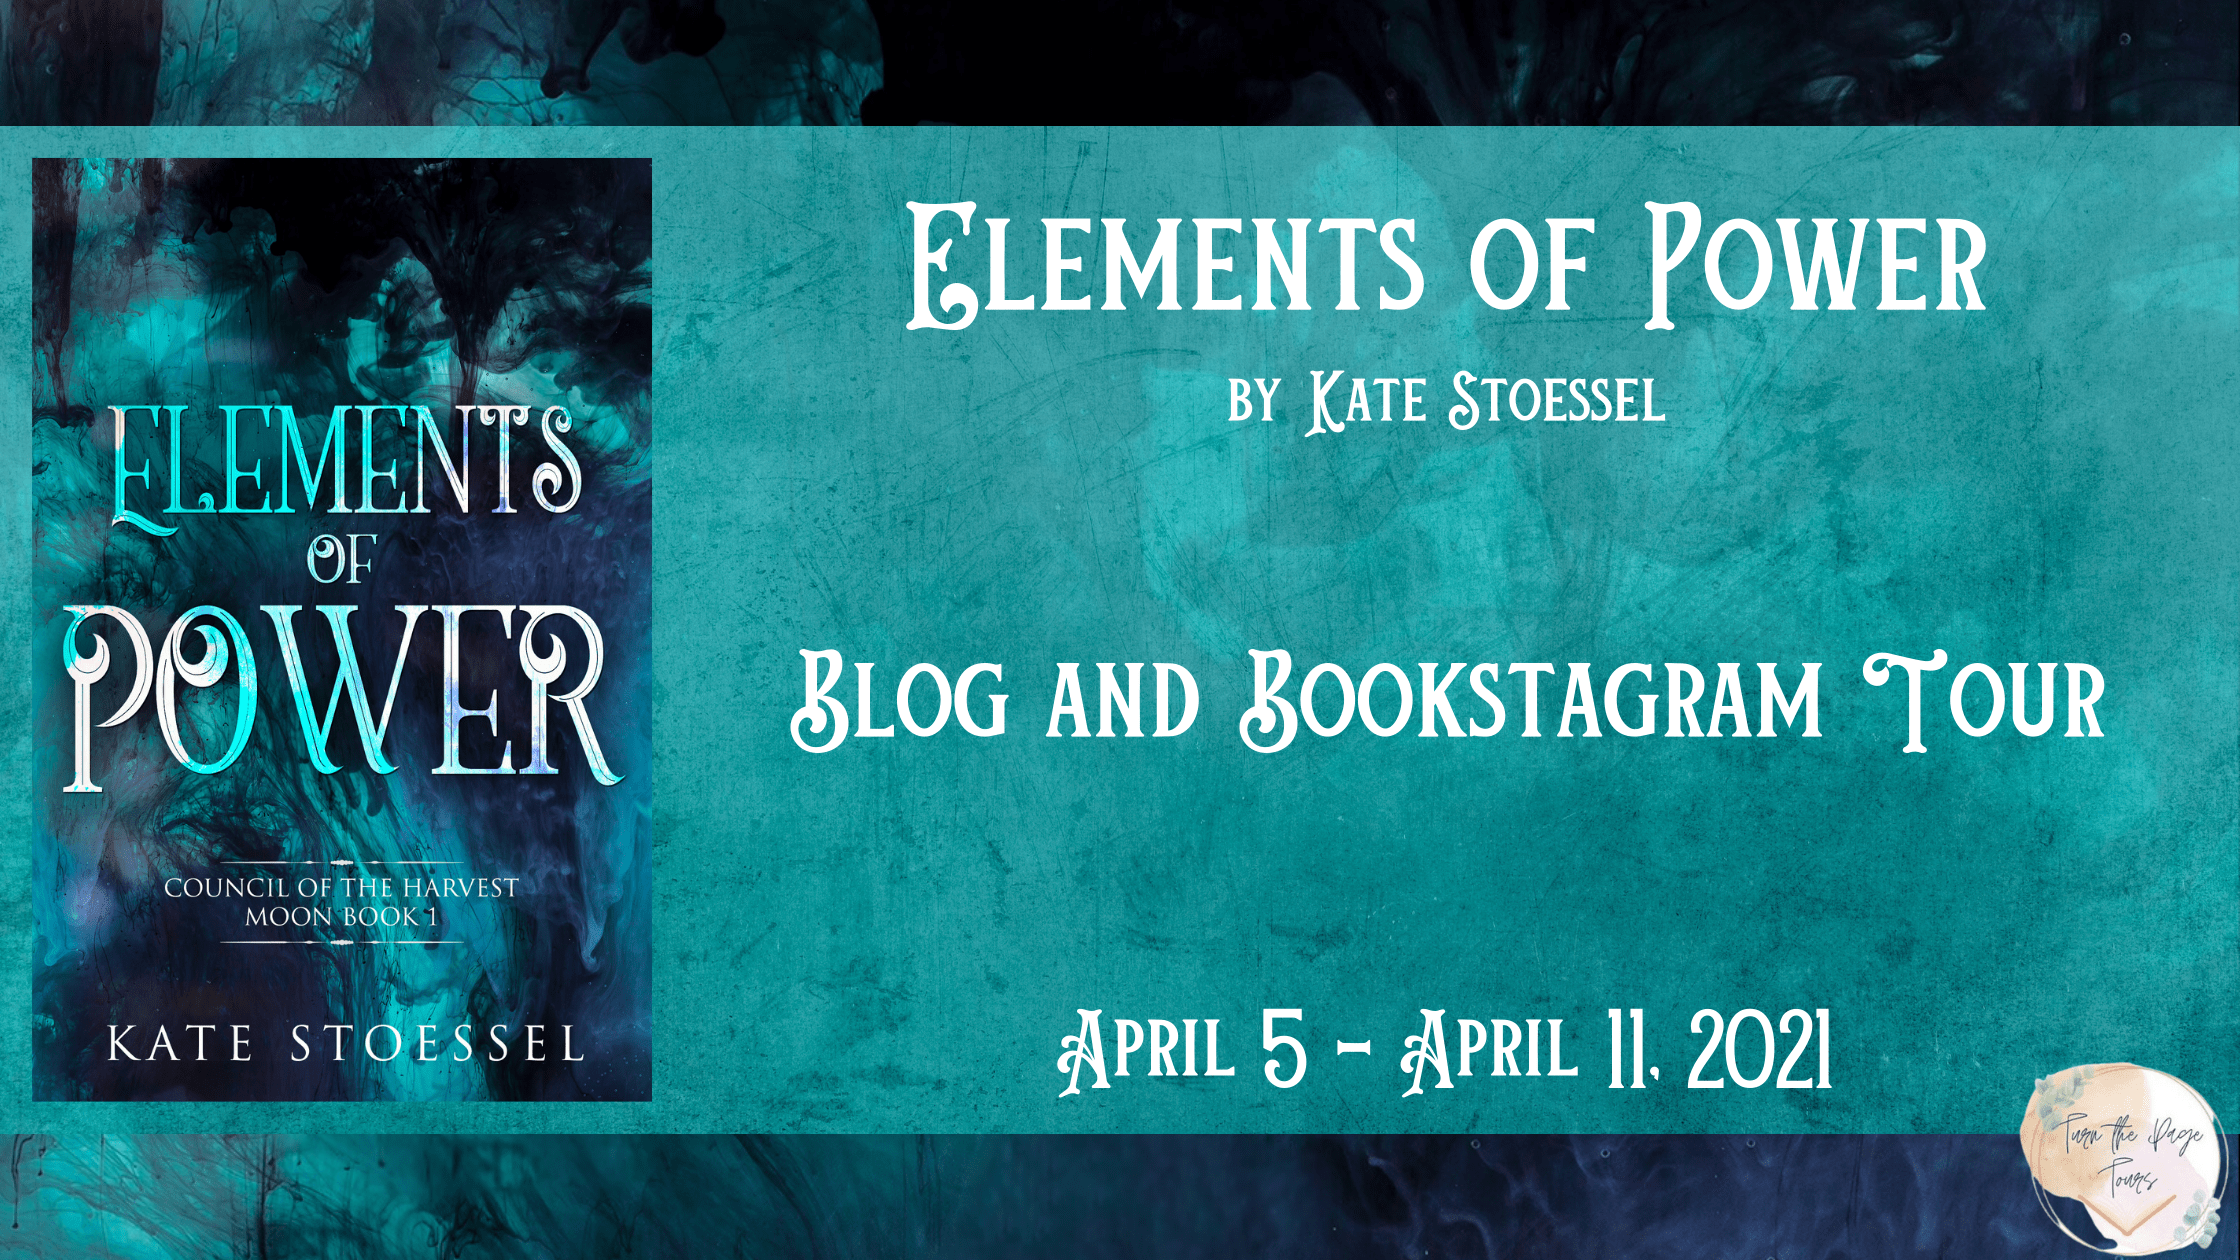 Blog Tour: Elements of Power by Kate Stoessel (Playlist + Giveaway!)